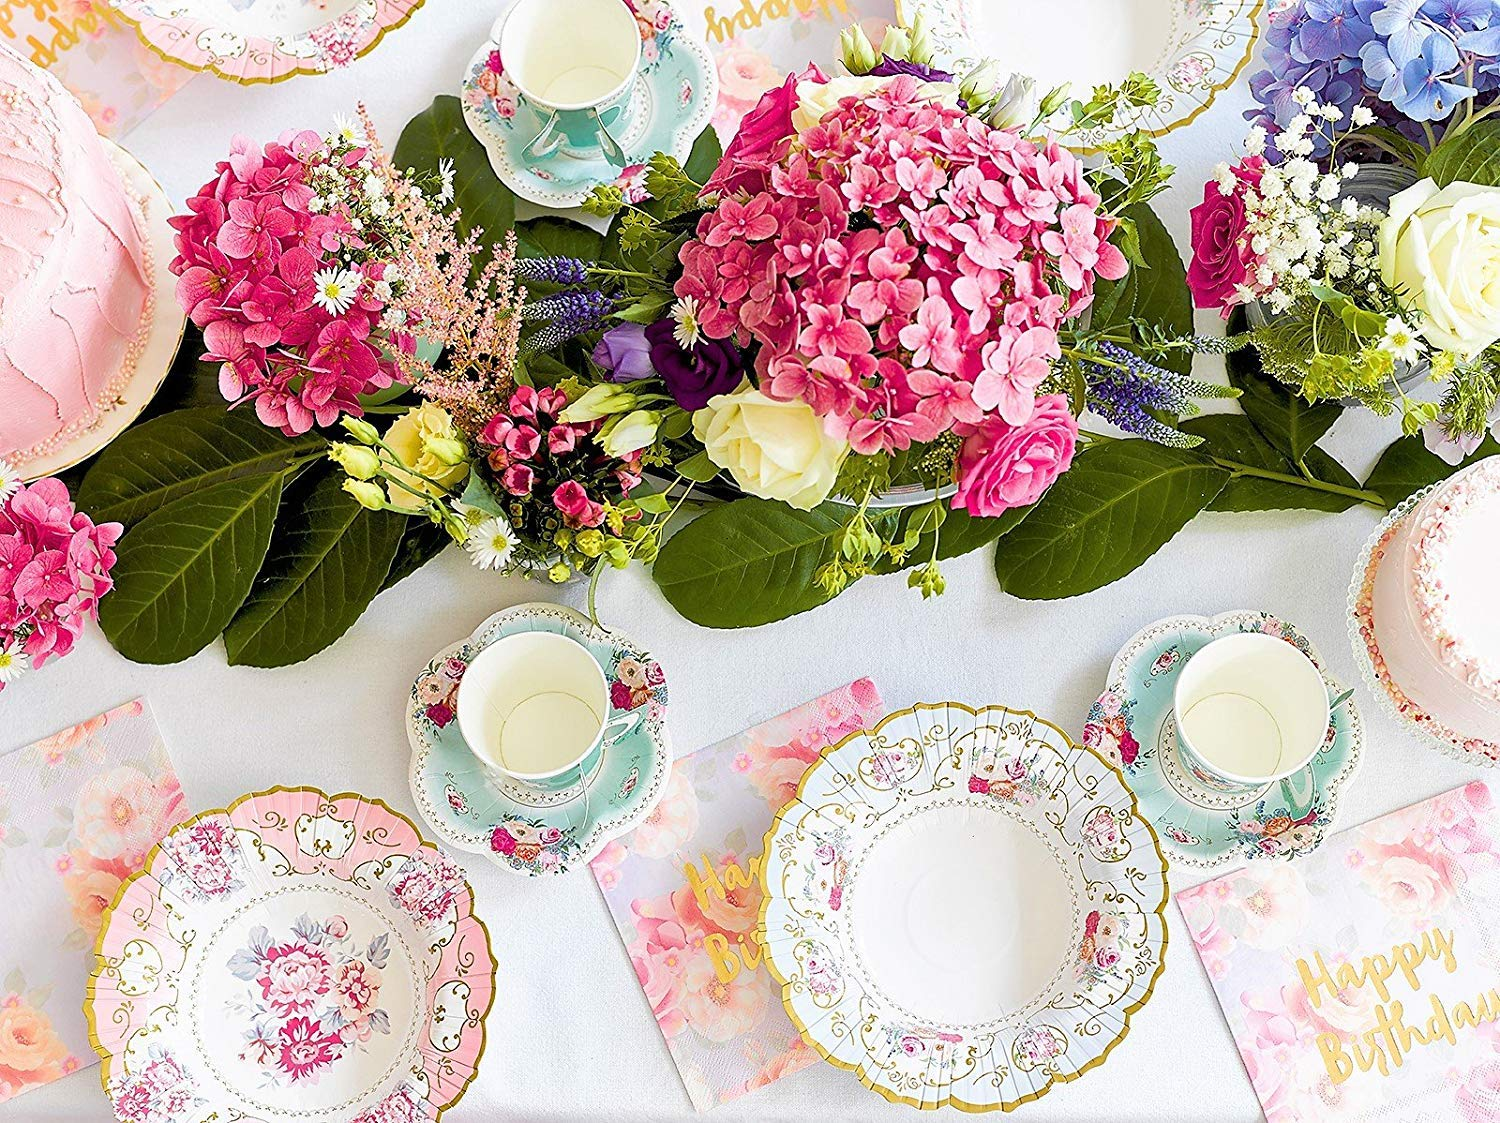 Happy Birthday Floral Paper Napkins 20 Pack Vintage Floral Small Paper Plates 12 Count Vintage Floral Paper Tea Cups and Saucer Sets 12 Count Talking Tables Truly Scrumptious Tea Party Bundle